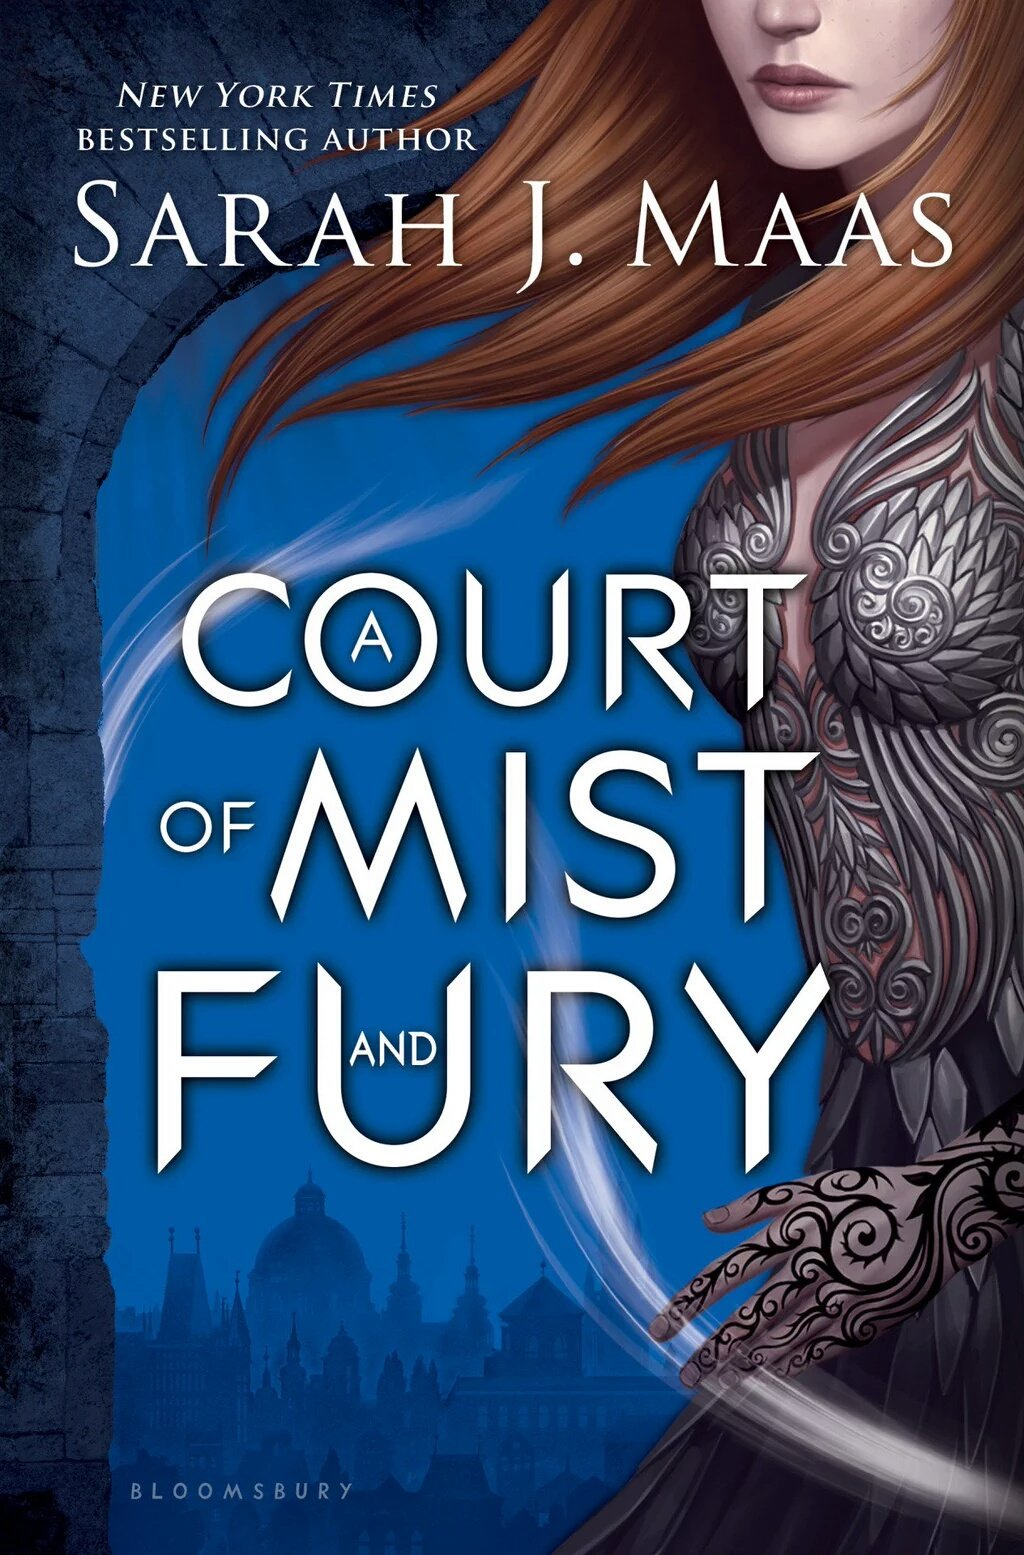 A Court of Mist and Fury (A Court of Thorns and Roses, #2) by Sarah J. Maas